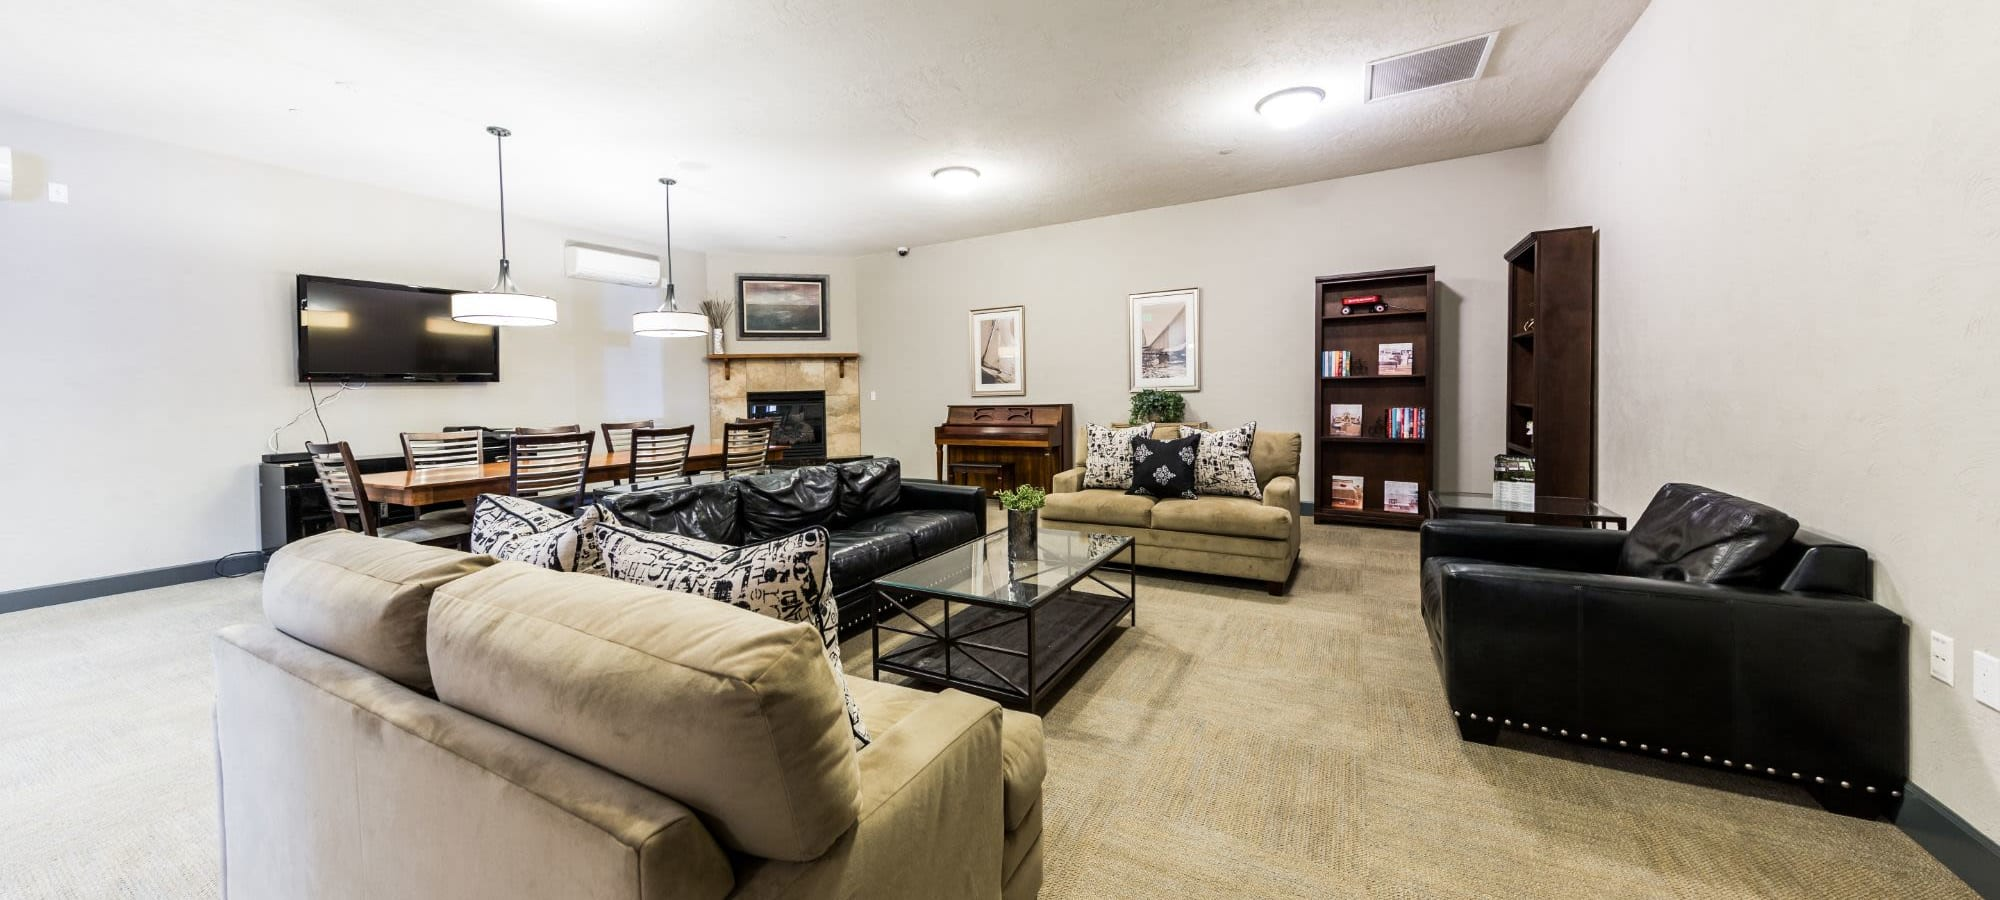 Apply to live at Copperline at Point Ruston in Tacoma, Washington